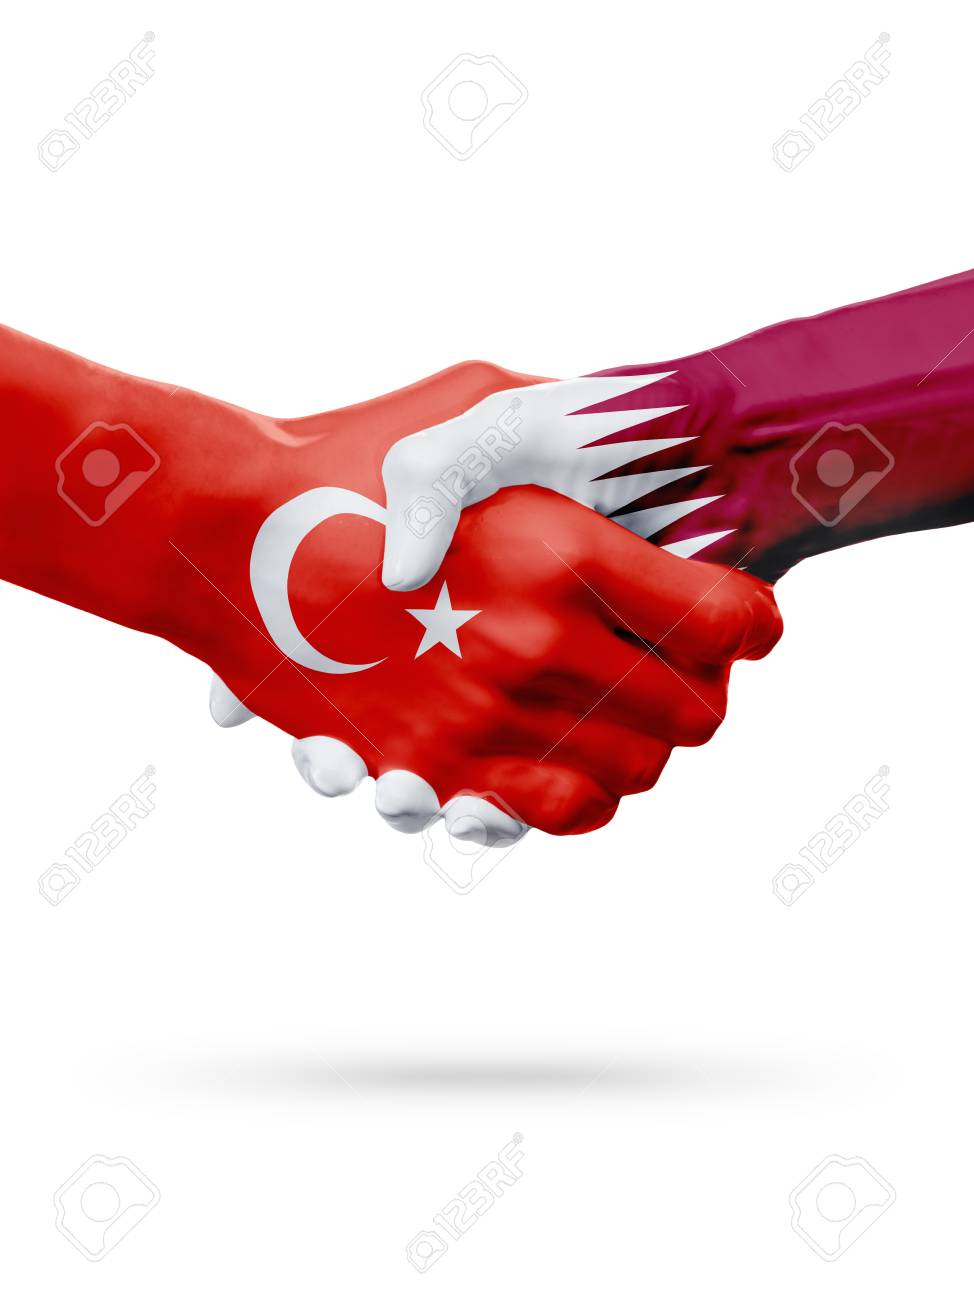 Flags Republic of Turkey, Qatar countries, handshake cooperation, partnership, friendship or sports team competition concept, isolated on white - 76073994